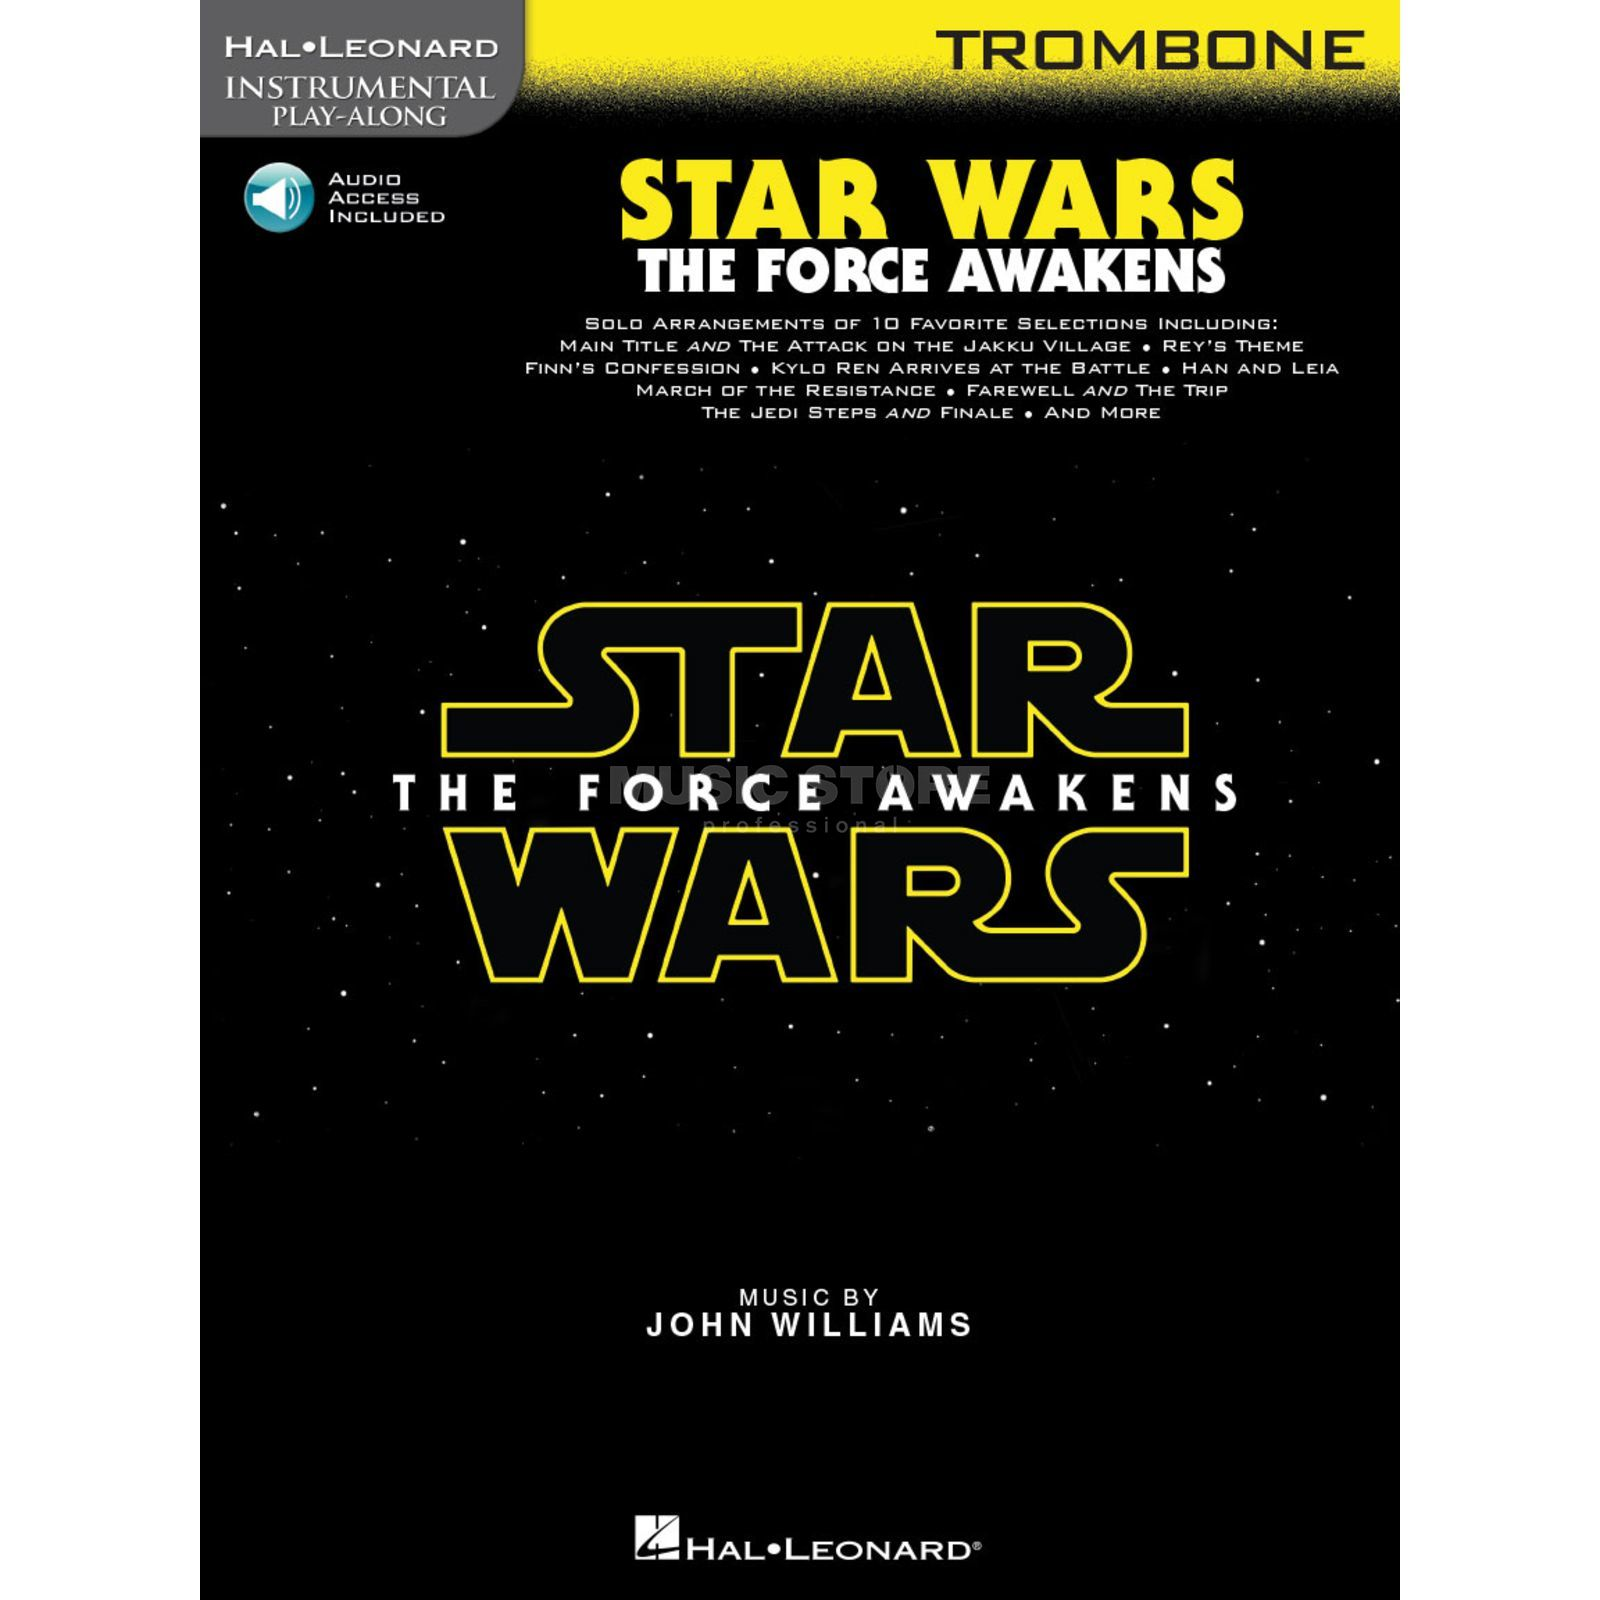 Hal Leonard Instrumental Play-Along: Star Wars - The Force Awakens - Trombone Image du produit